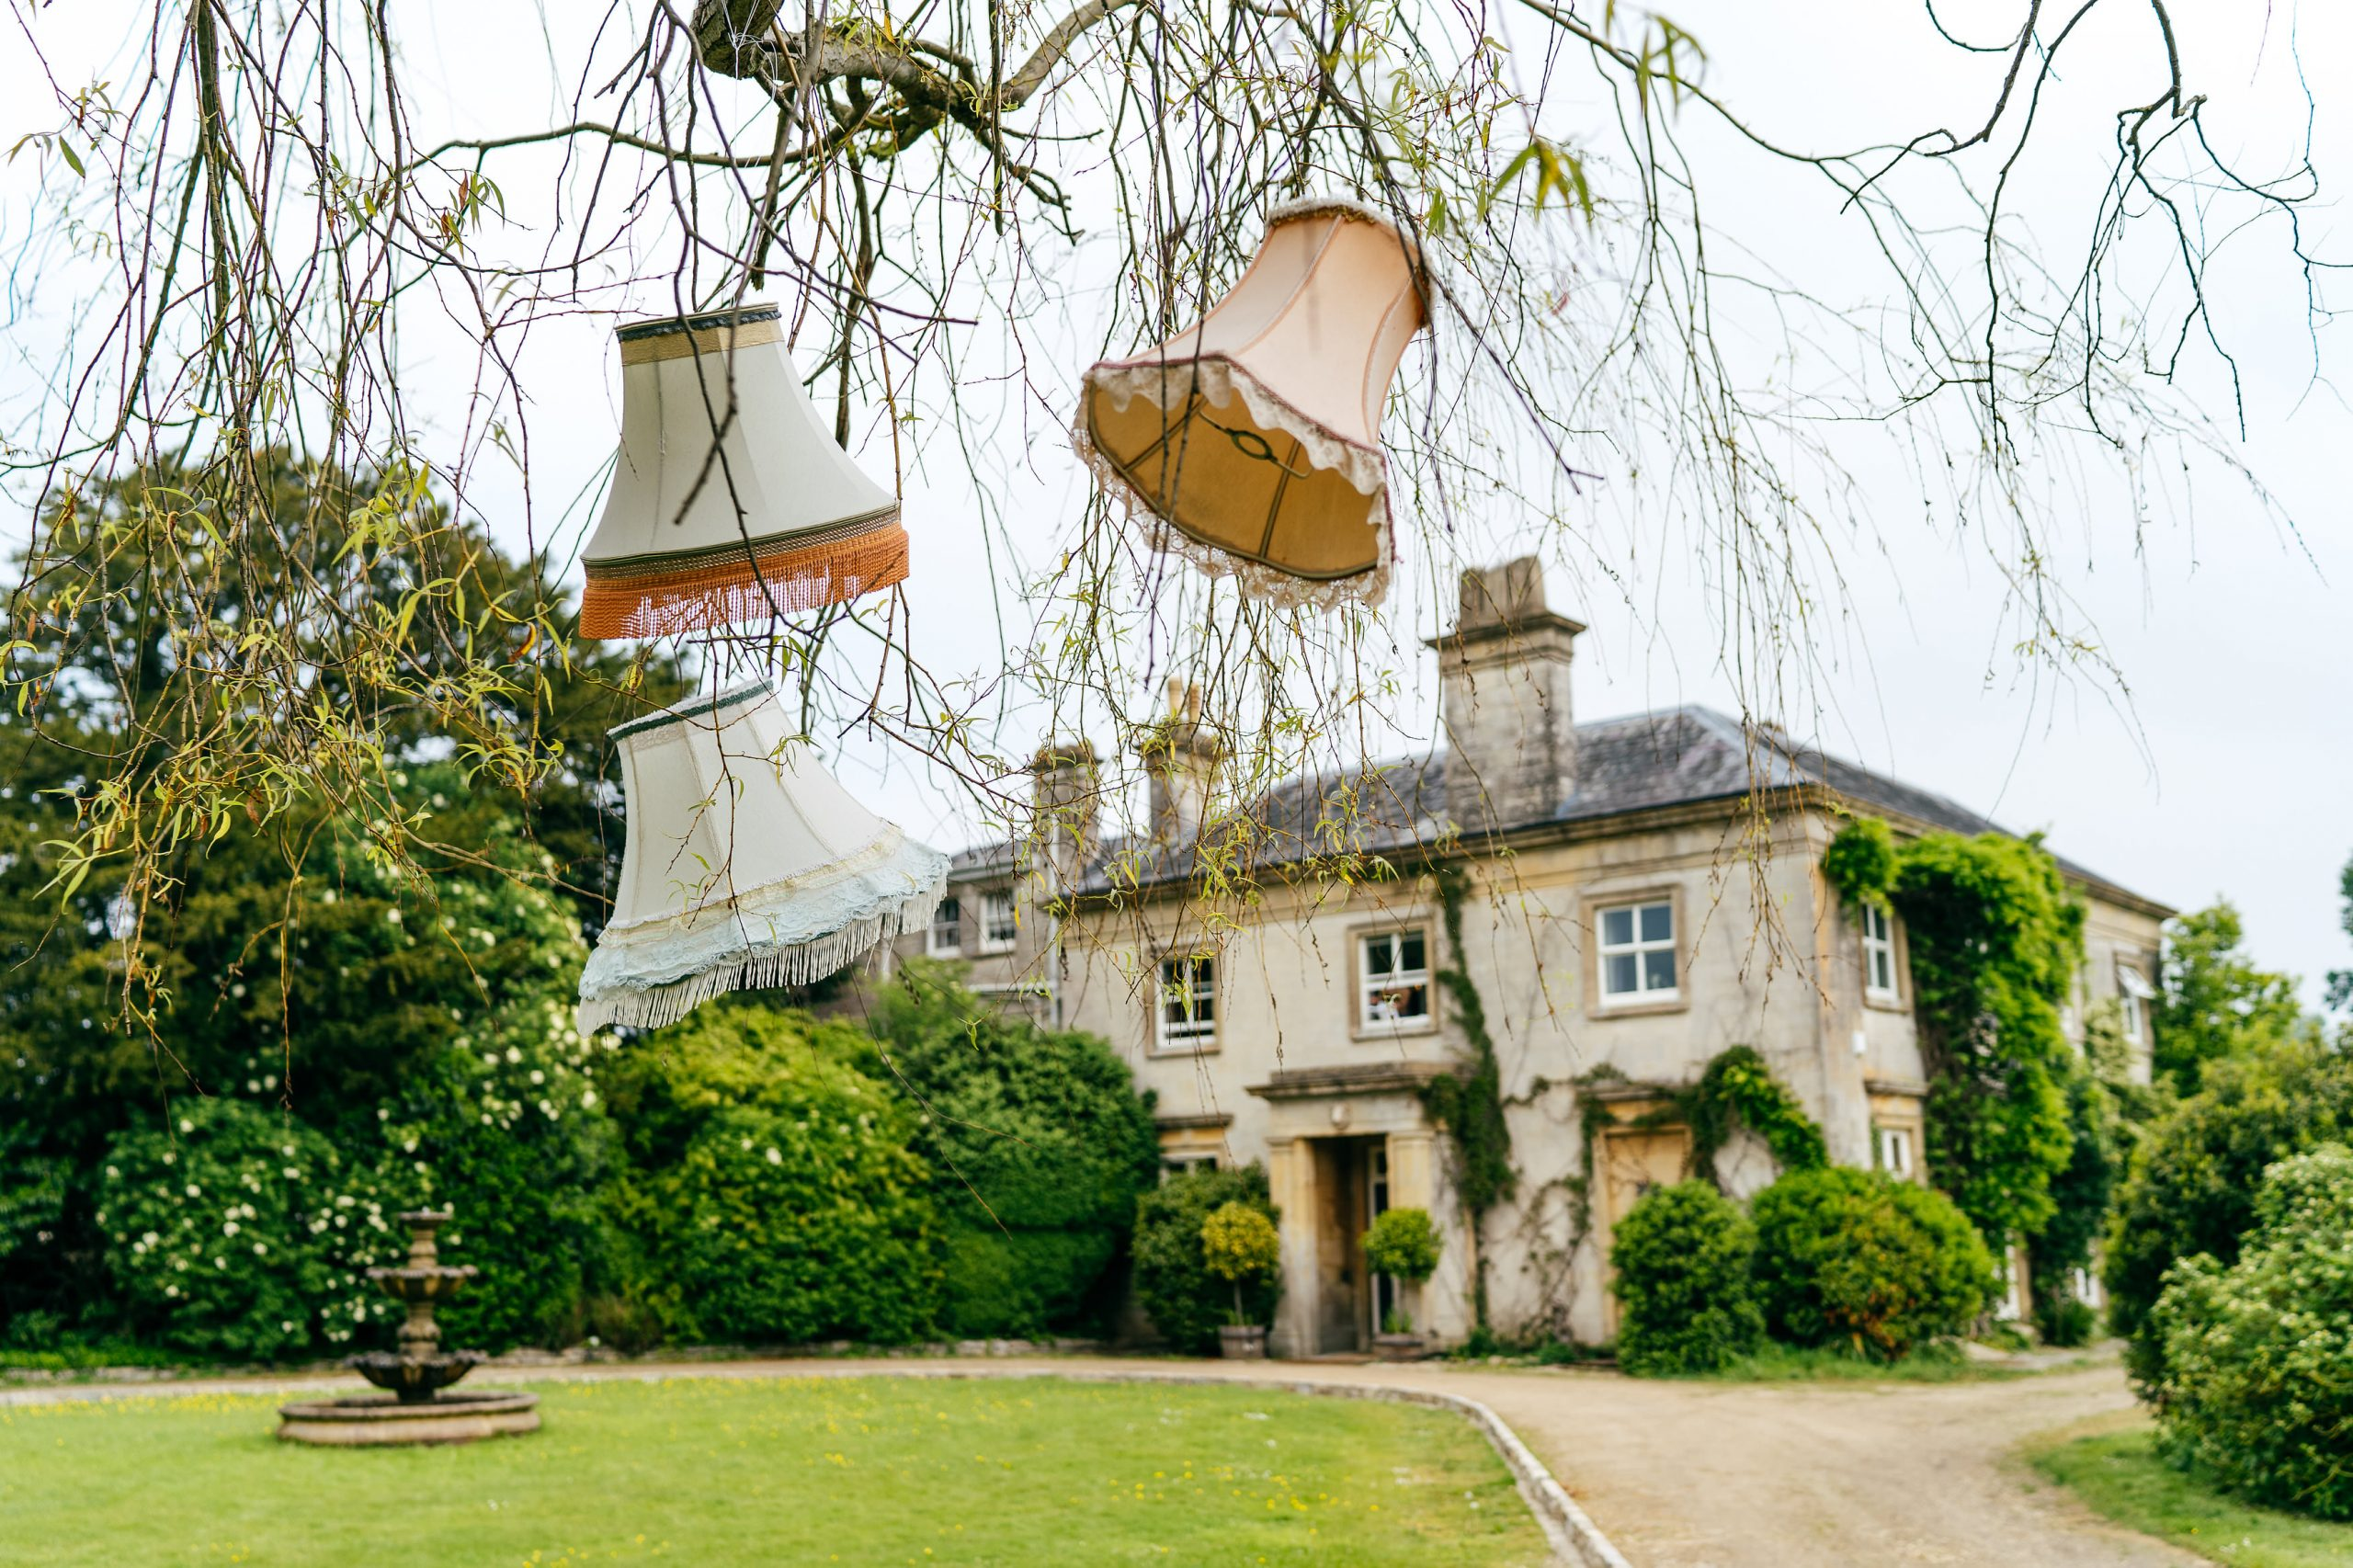 Brilliant and Bonkers Sparkford Hall Wedding venue available for private hire all week. Lampshades hang surreally from trees